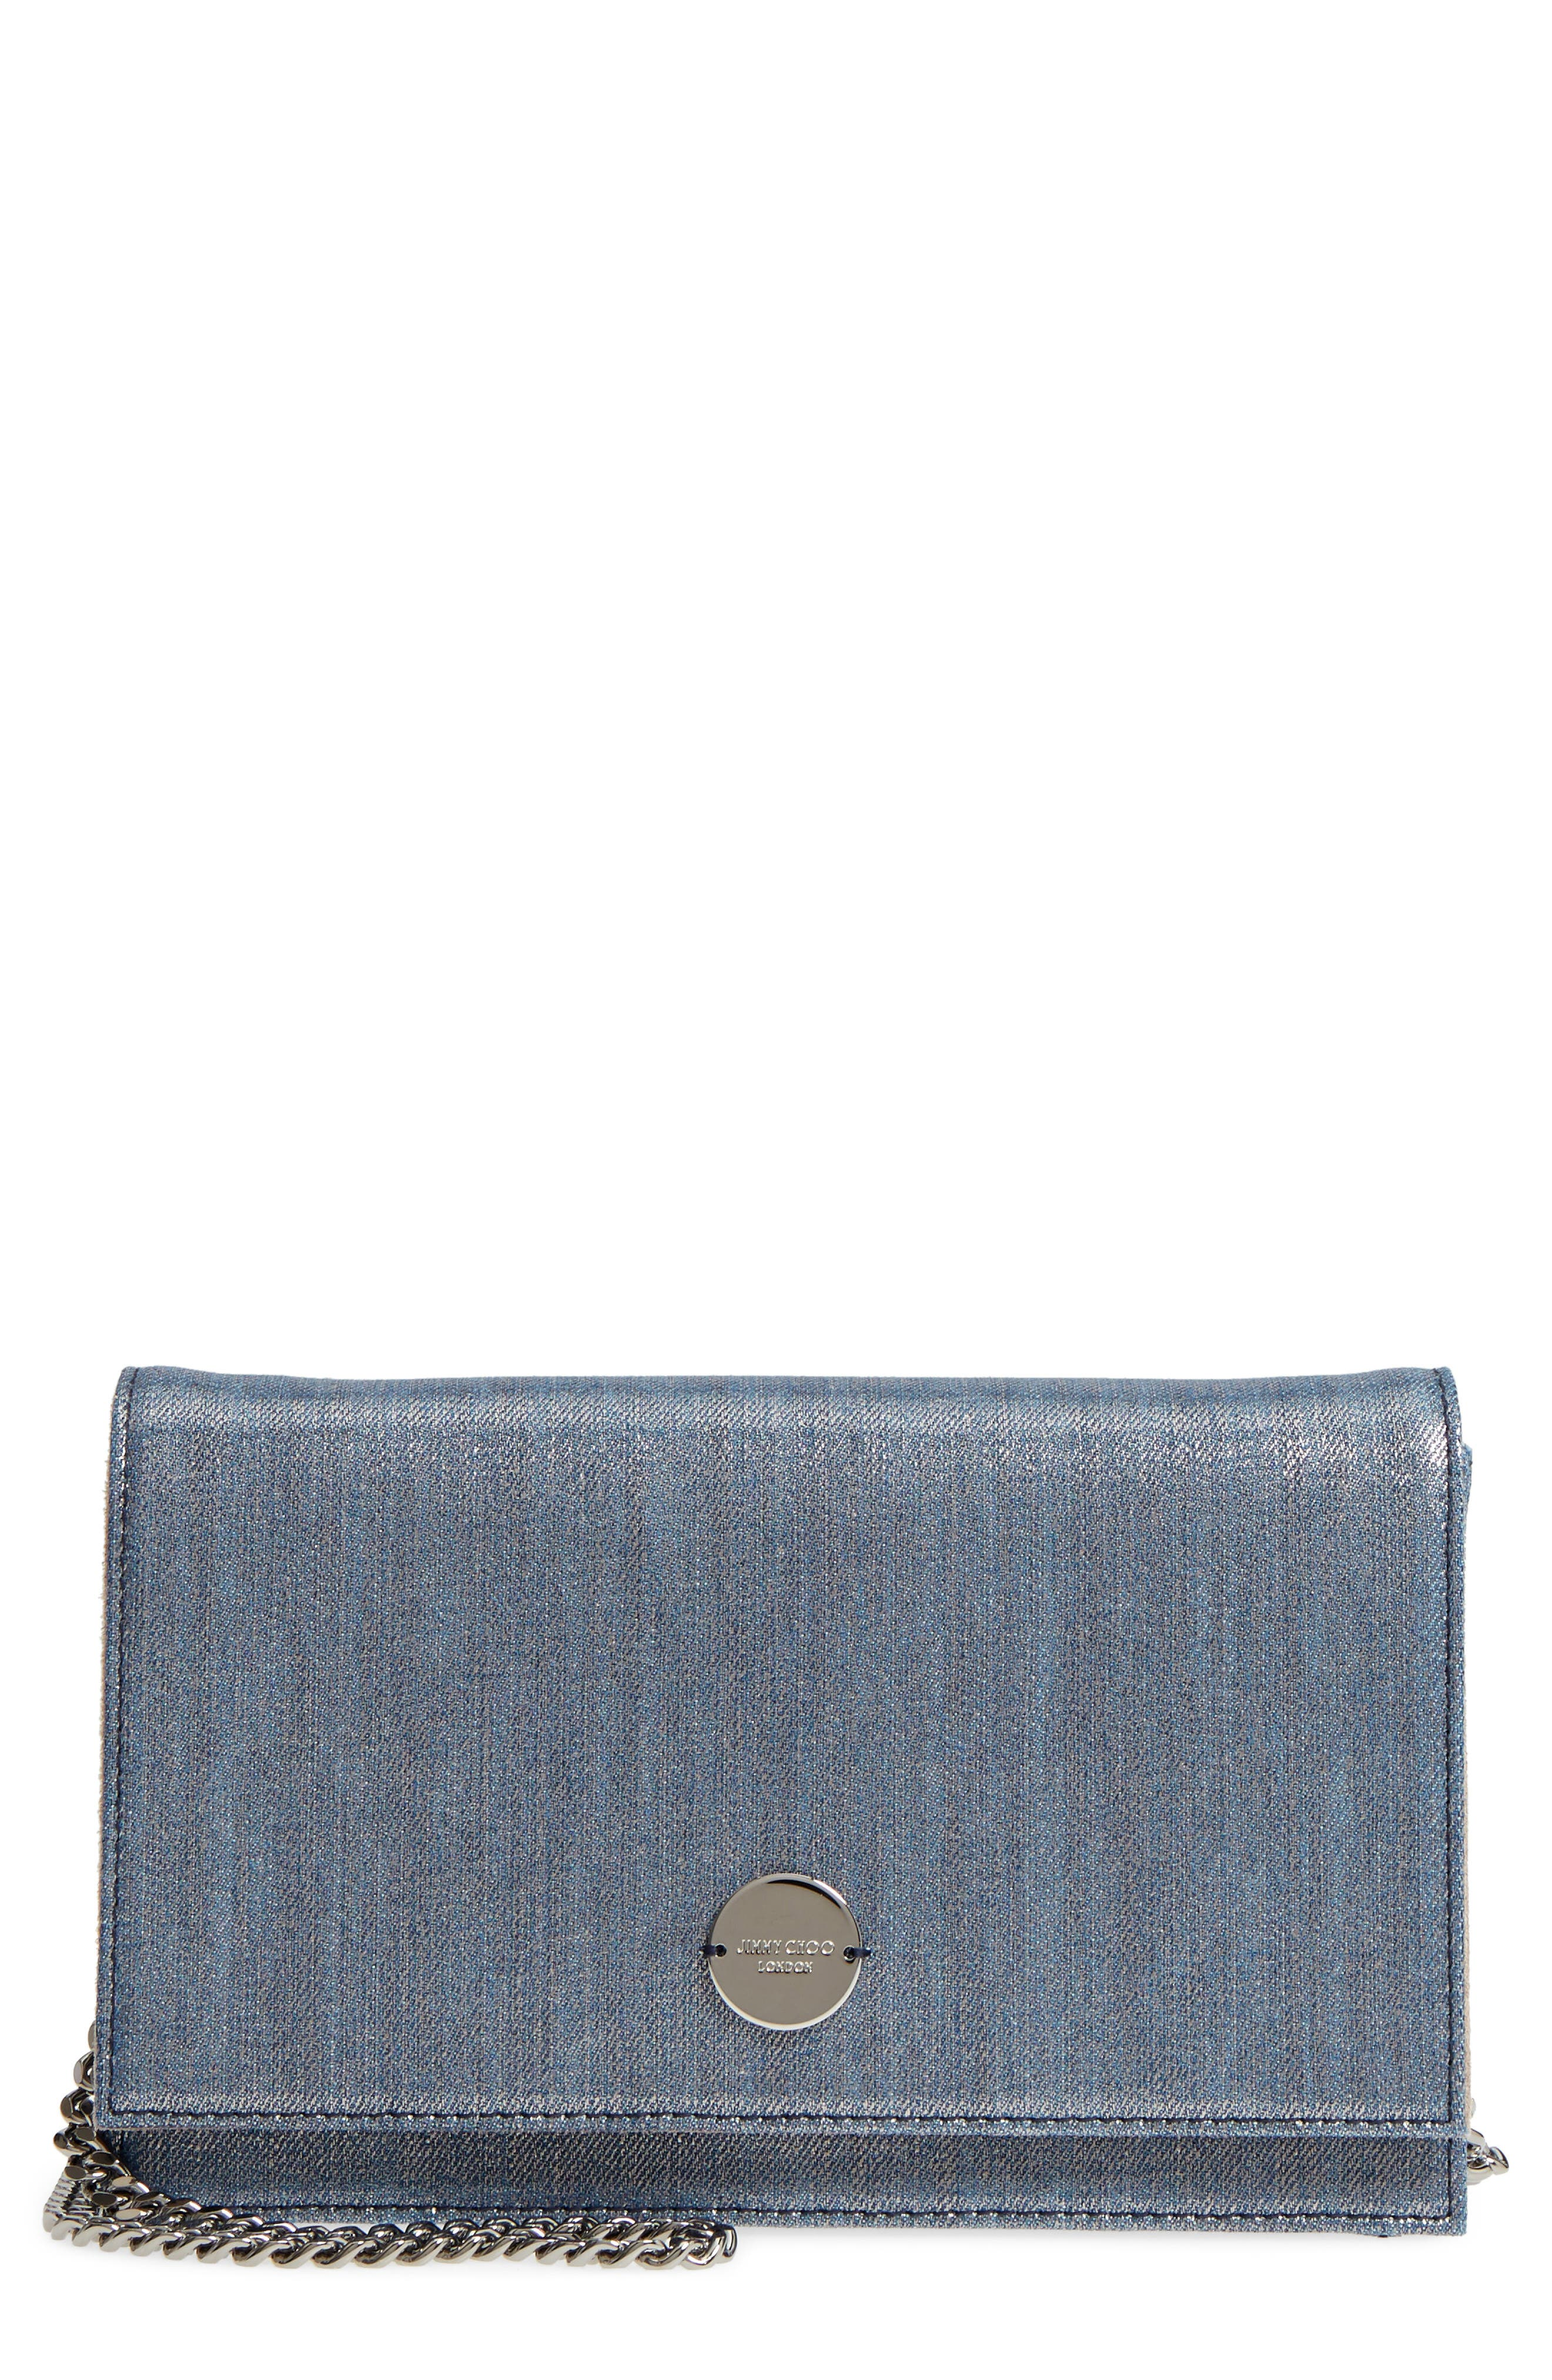 Florence Metallic Denim Glitter Clutch,                         Main,                         color, Dusk Blue